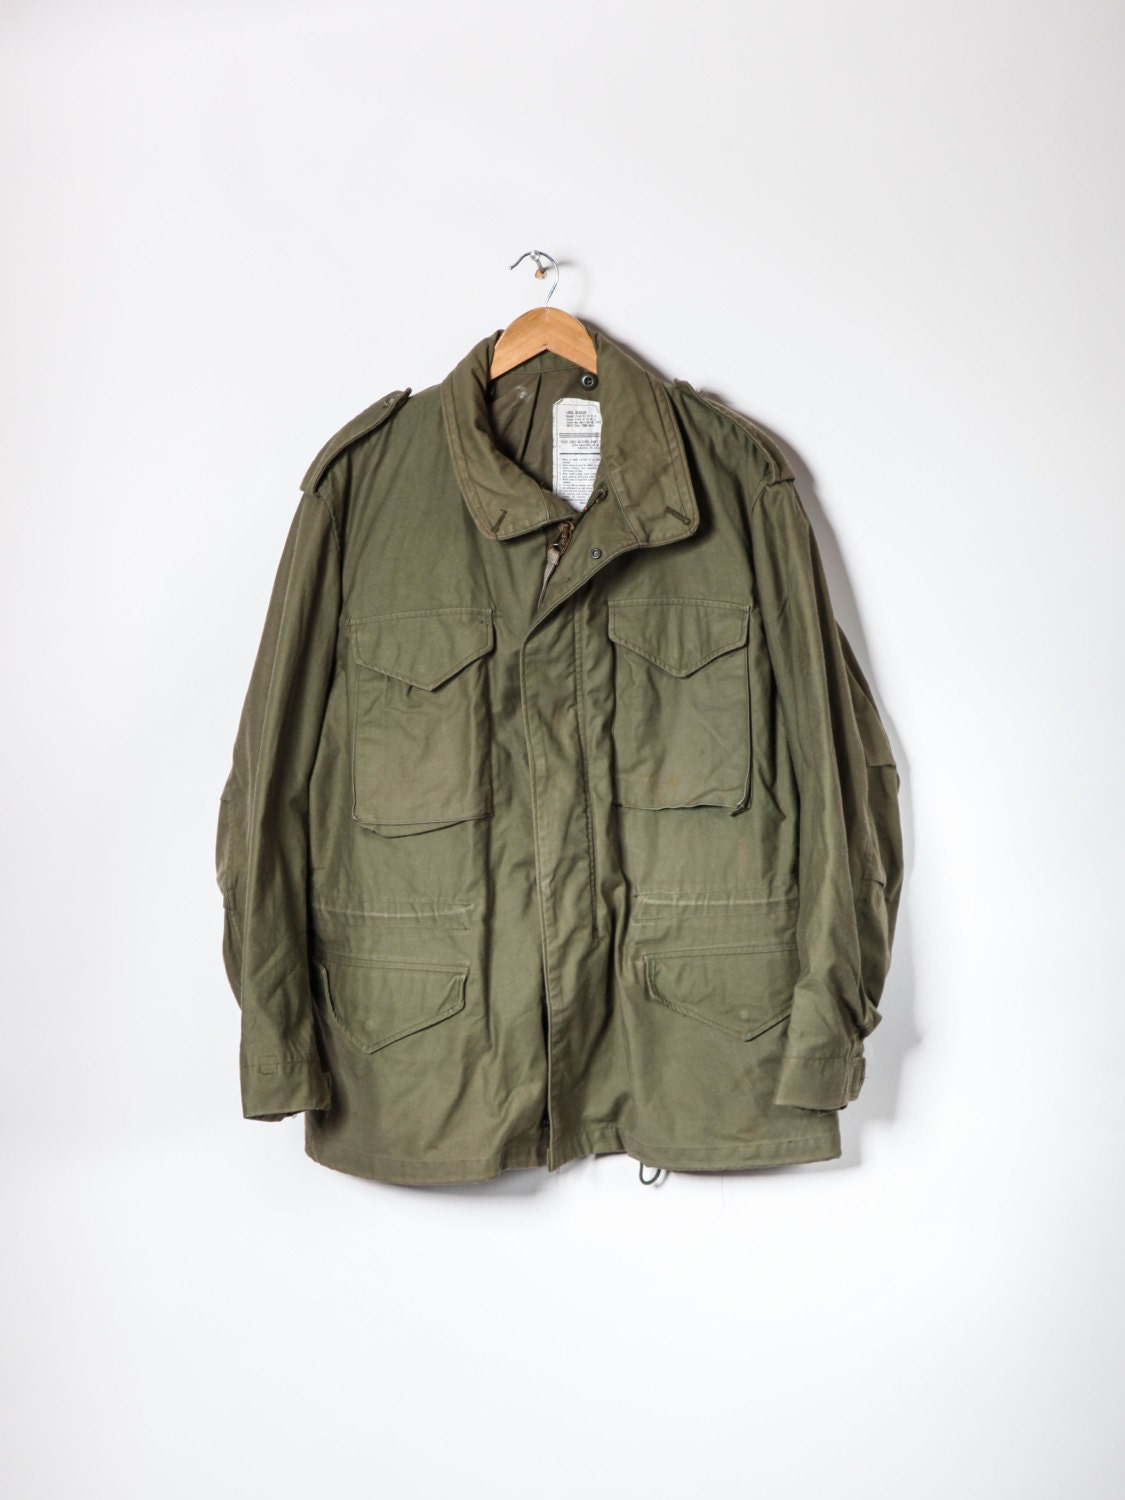 Vintage  Mens M65 Olive Green US Army Field Jacket Small/ Short